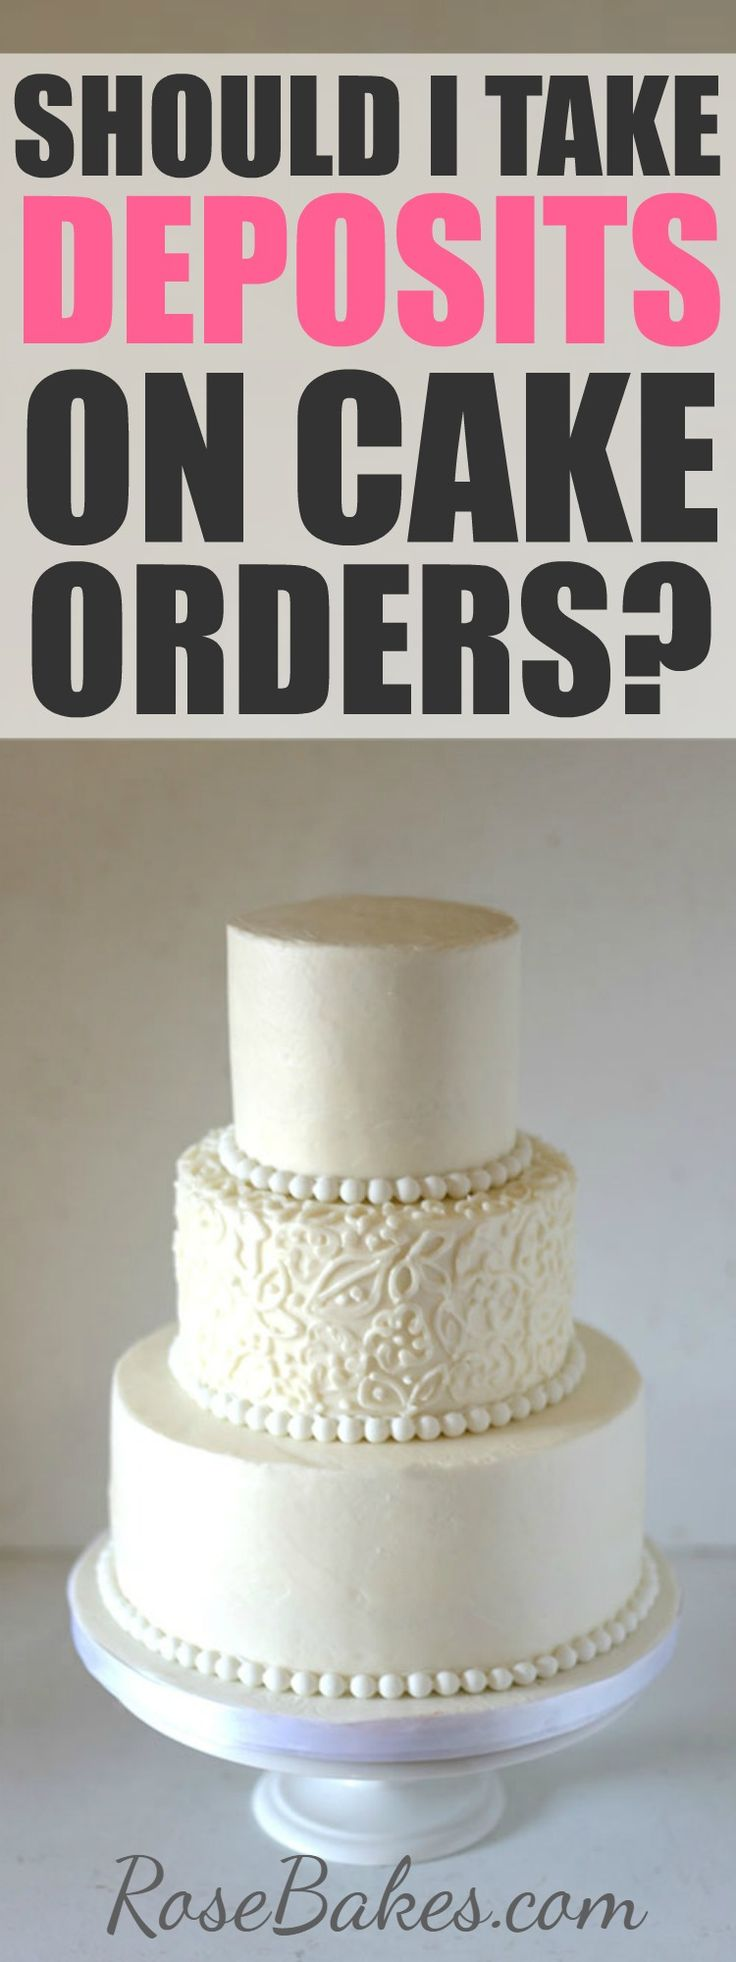 Should I take deposits on cake orders? If so, how much? How should they pay? Get answers at RoseBakes.com